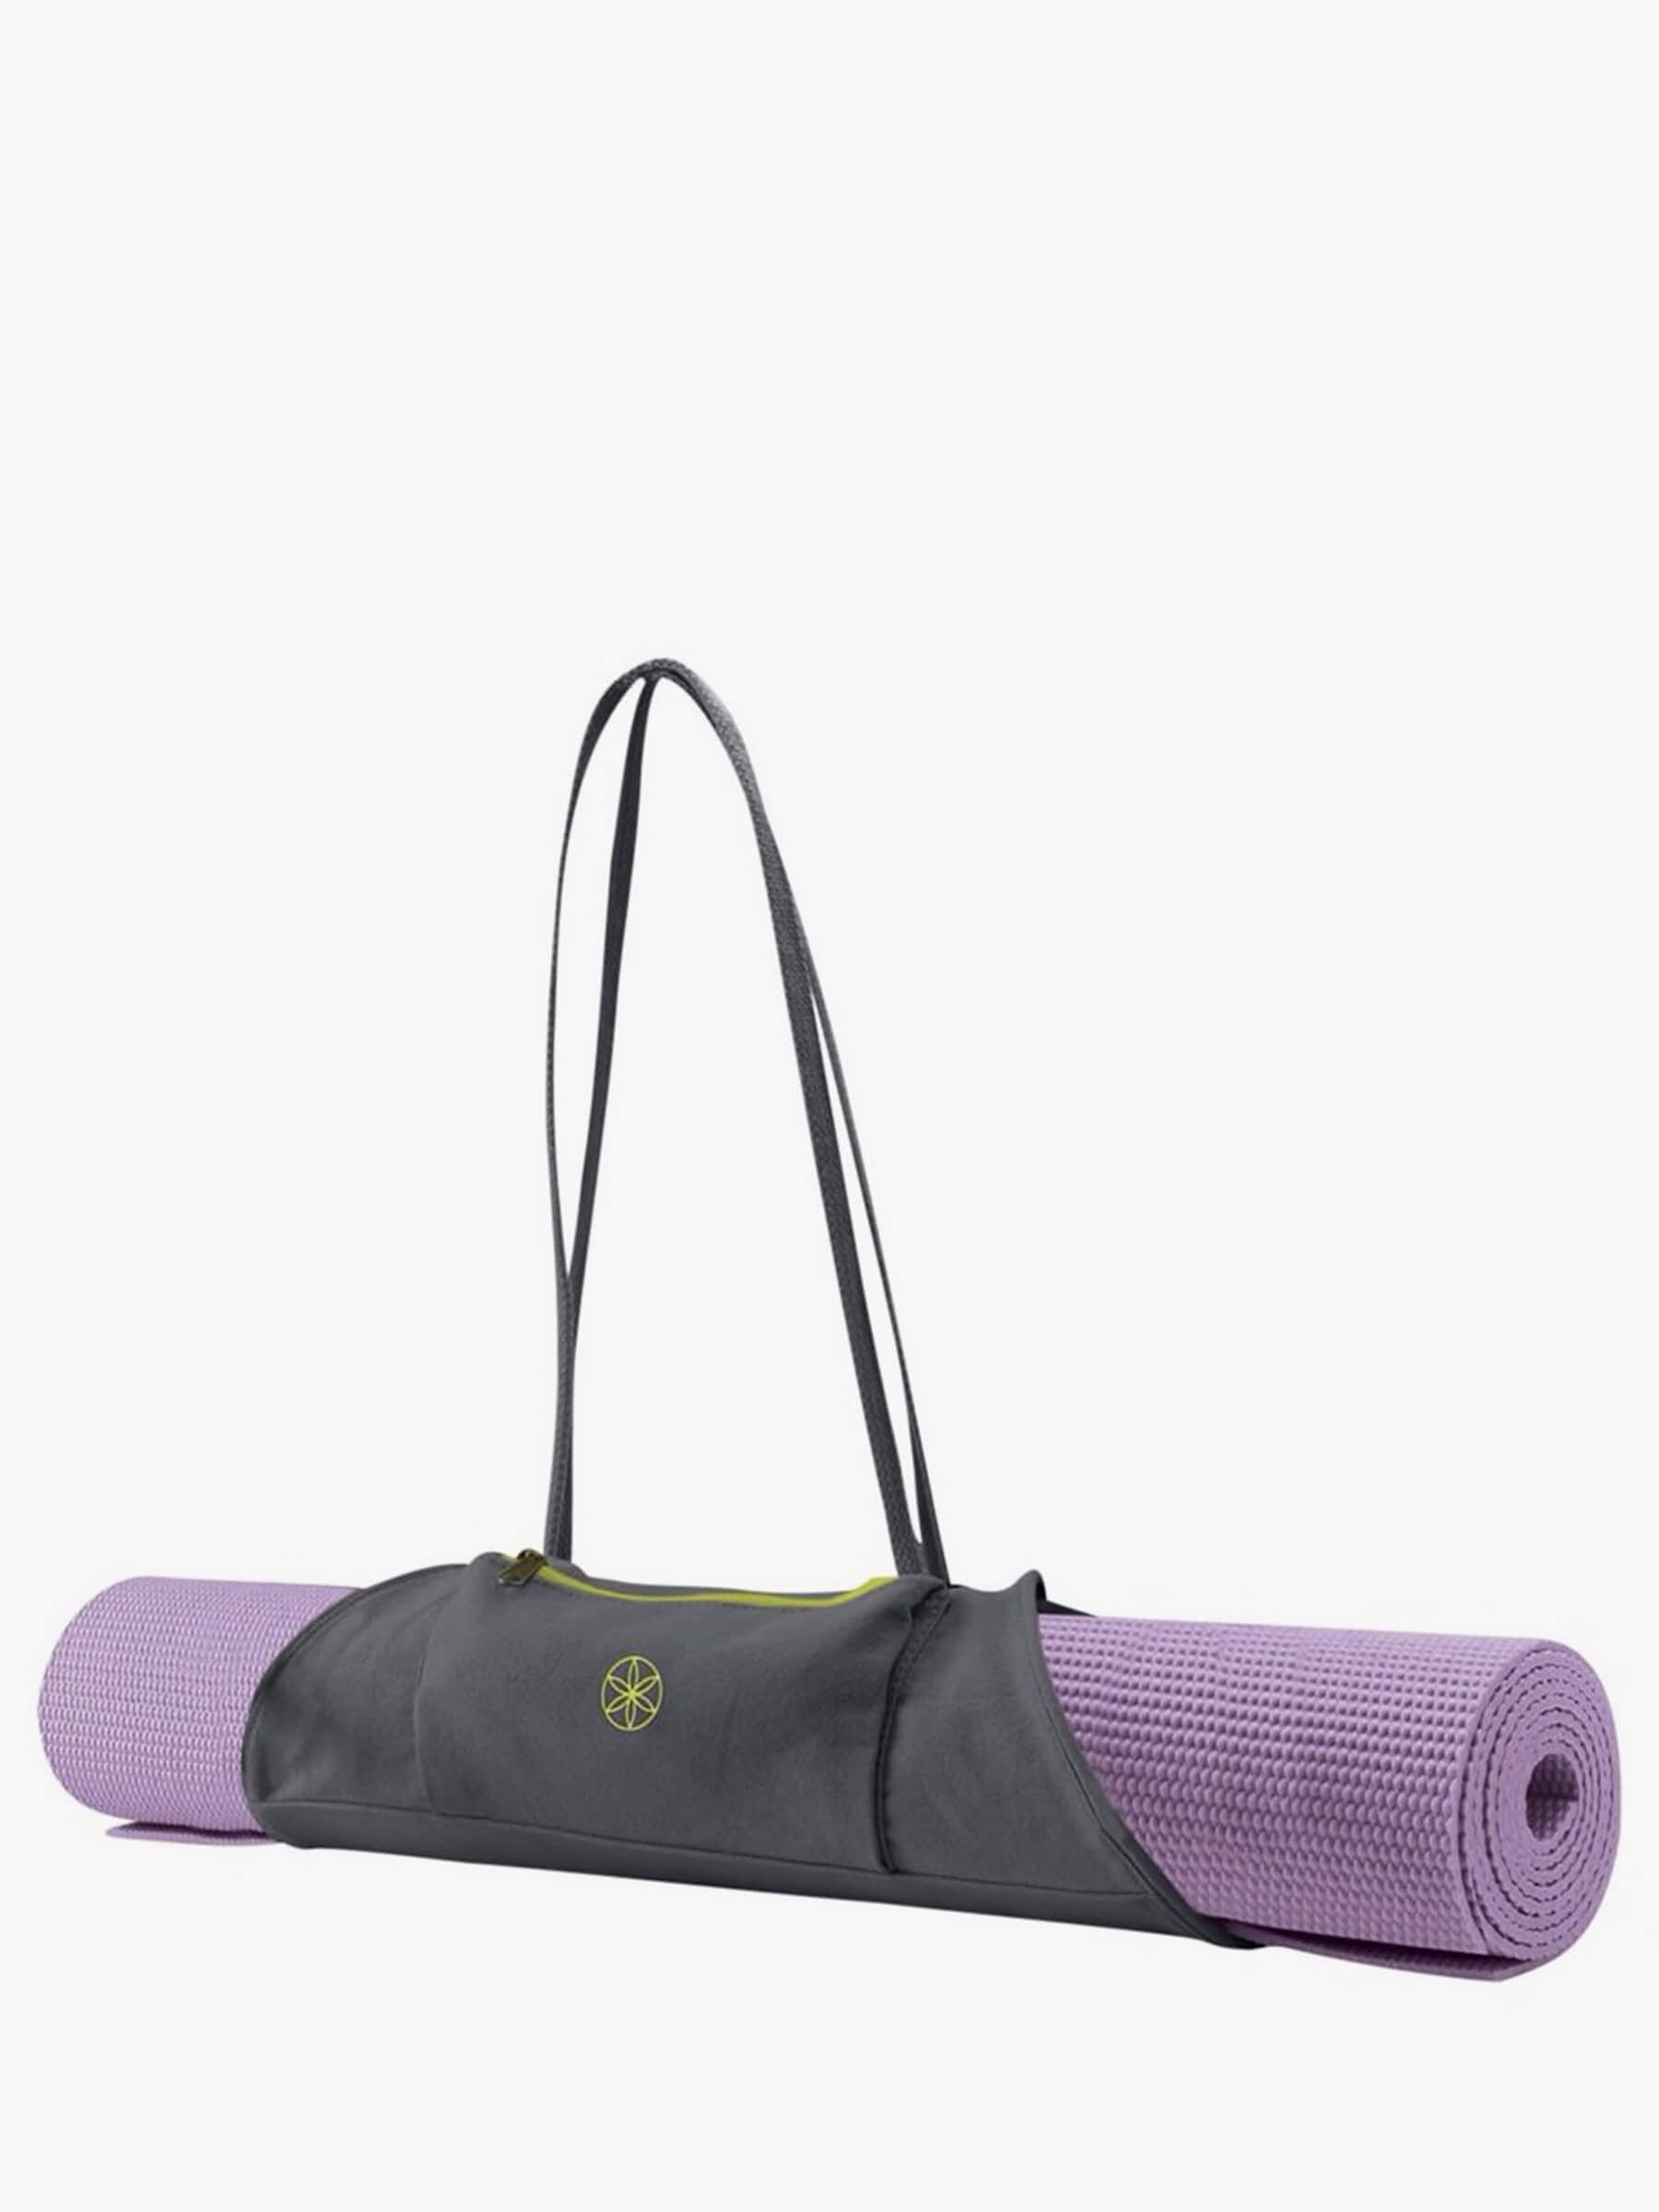 Buy Gaiam On-The-Go Yoga Mat Carrier, Grey/Citron Online at johnlewis.com